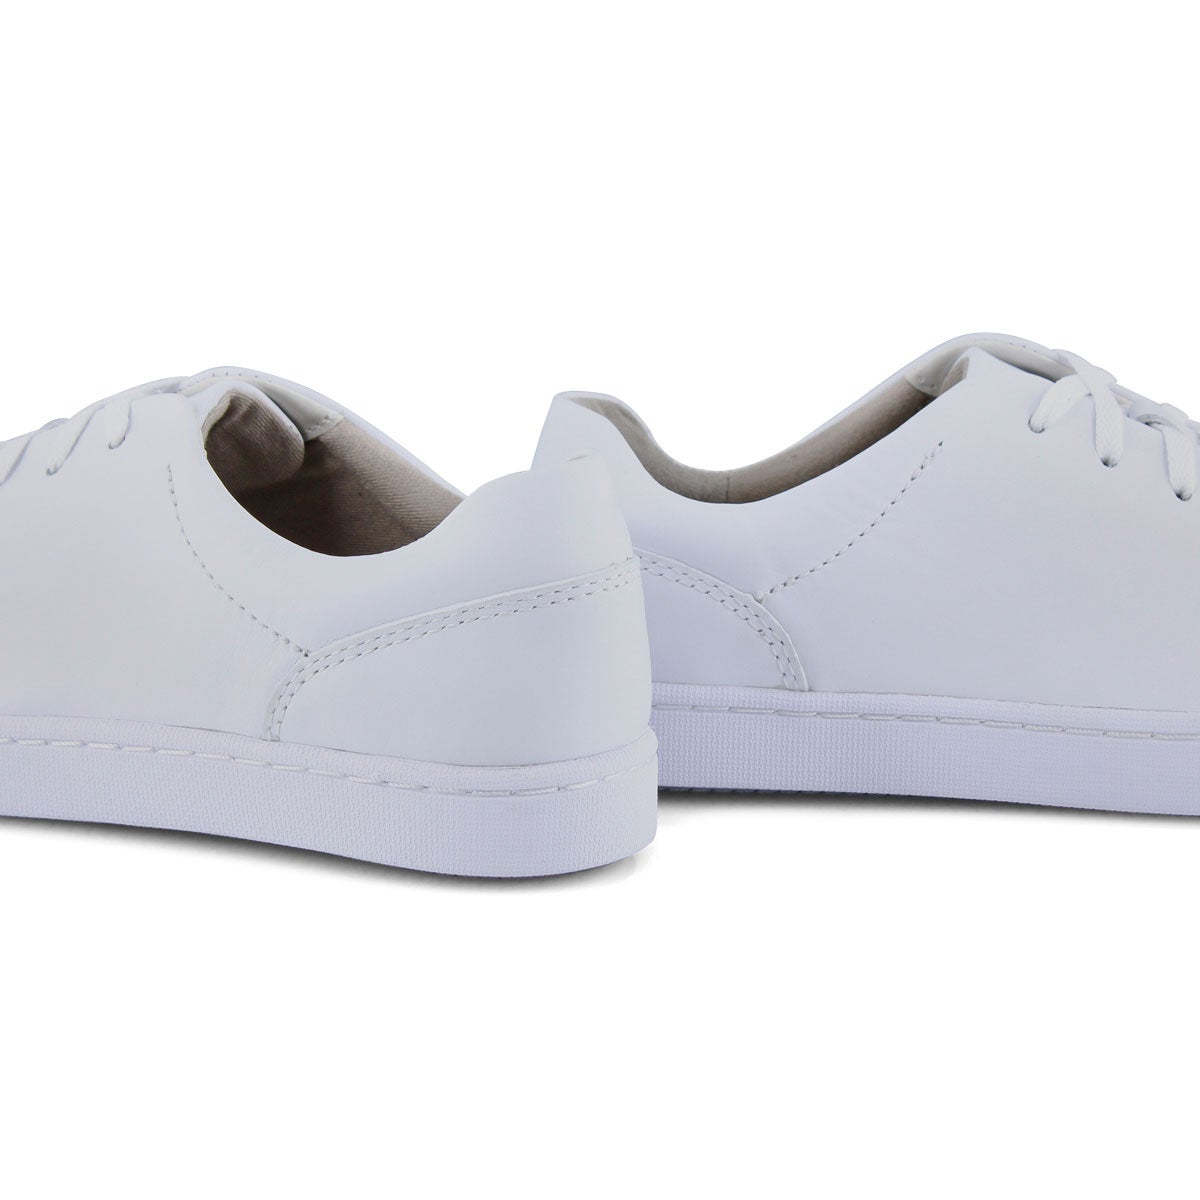 Lds Pawley Springs white lace up shoe